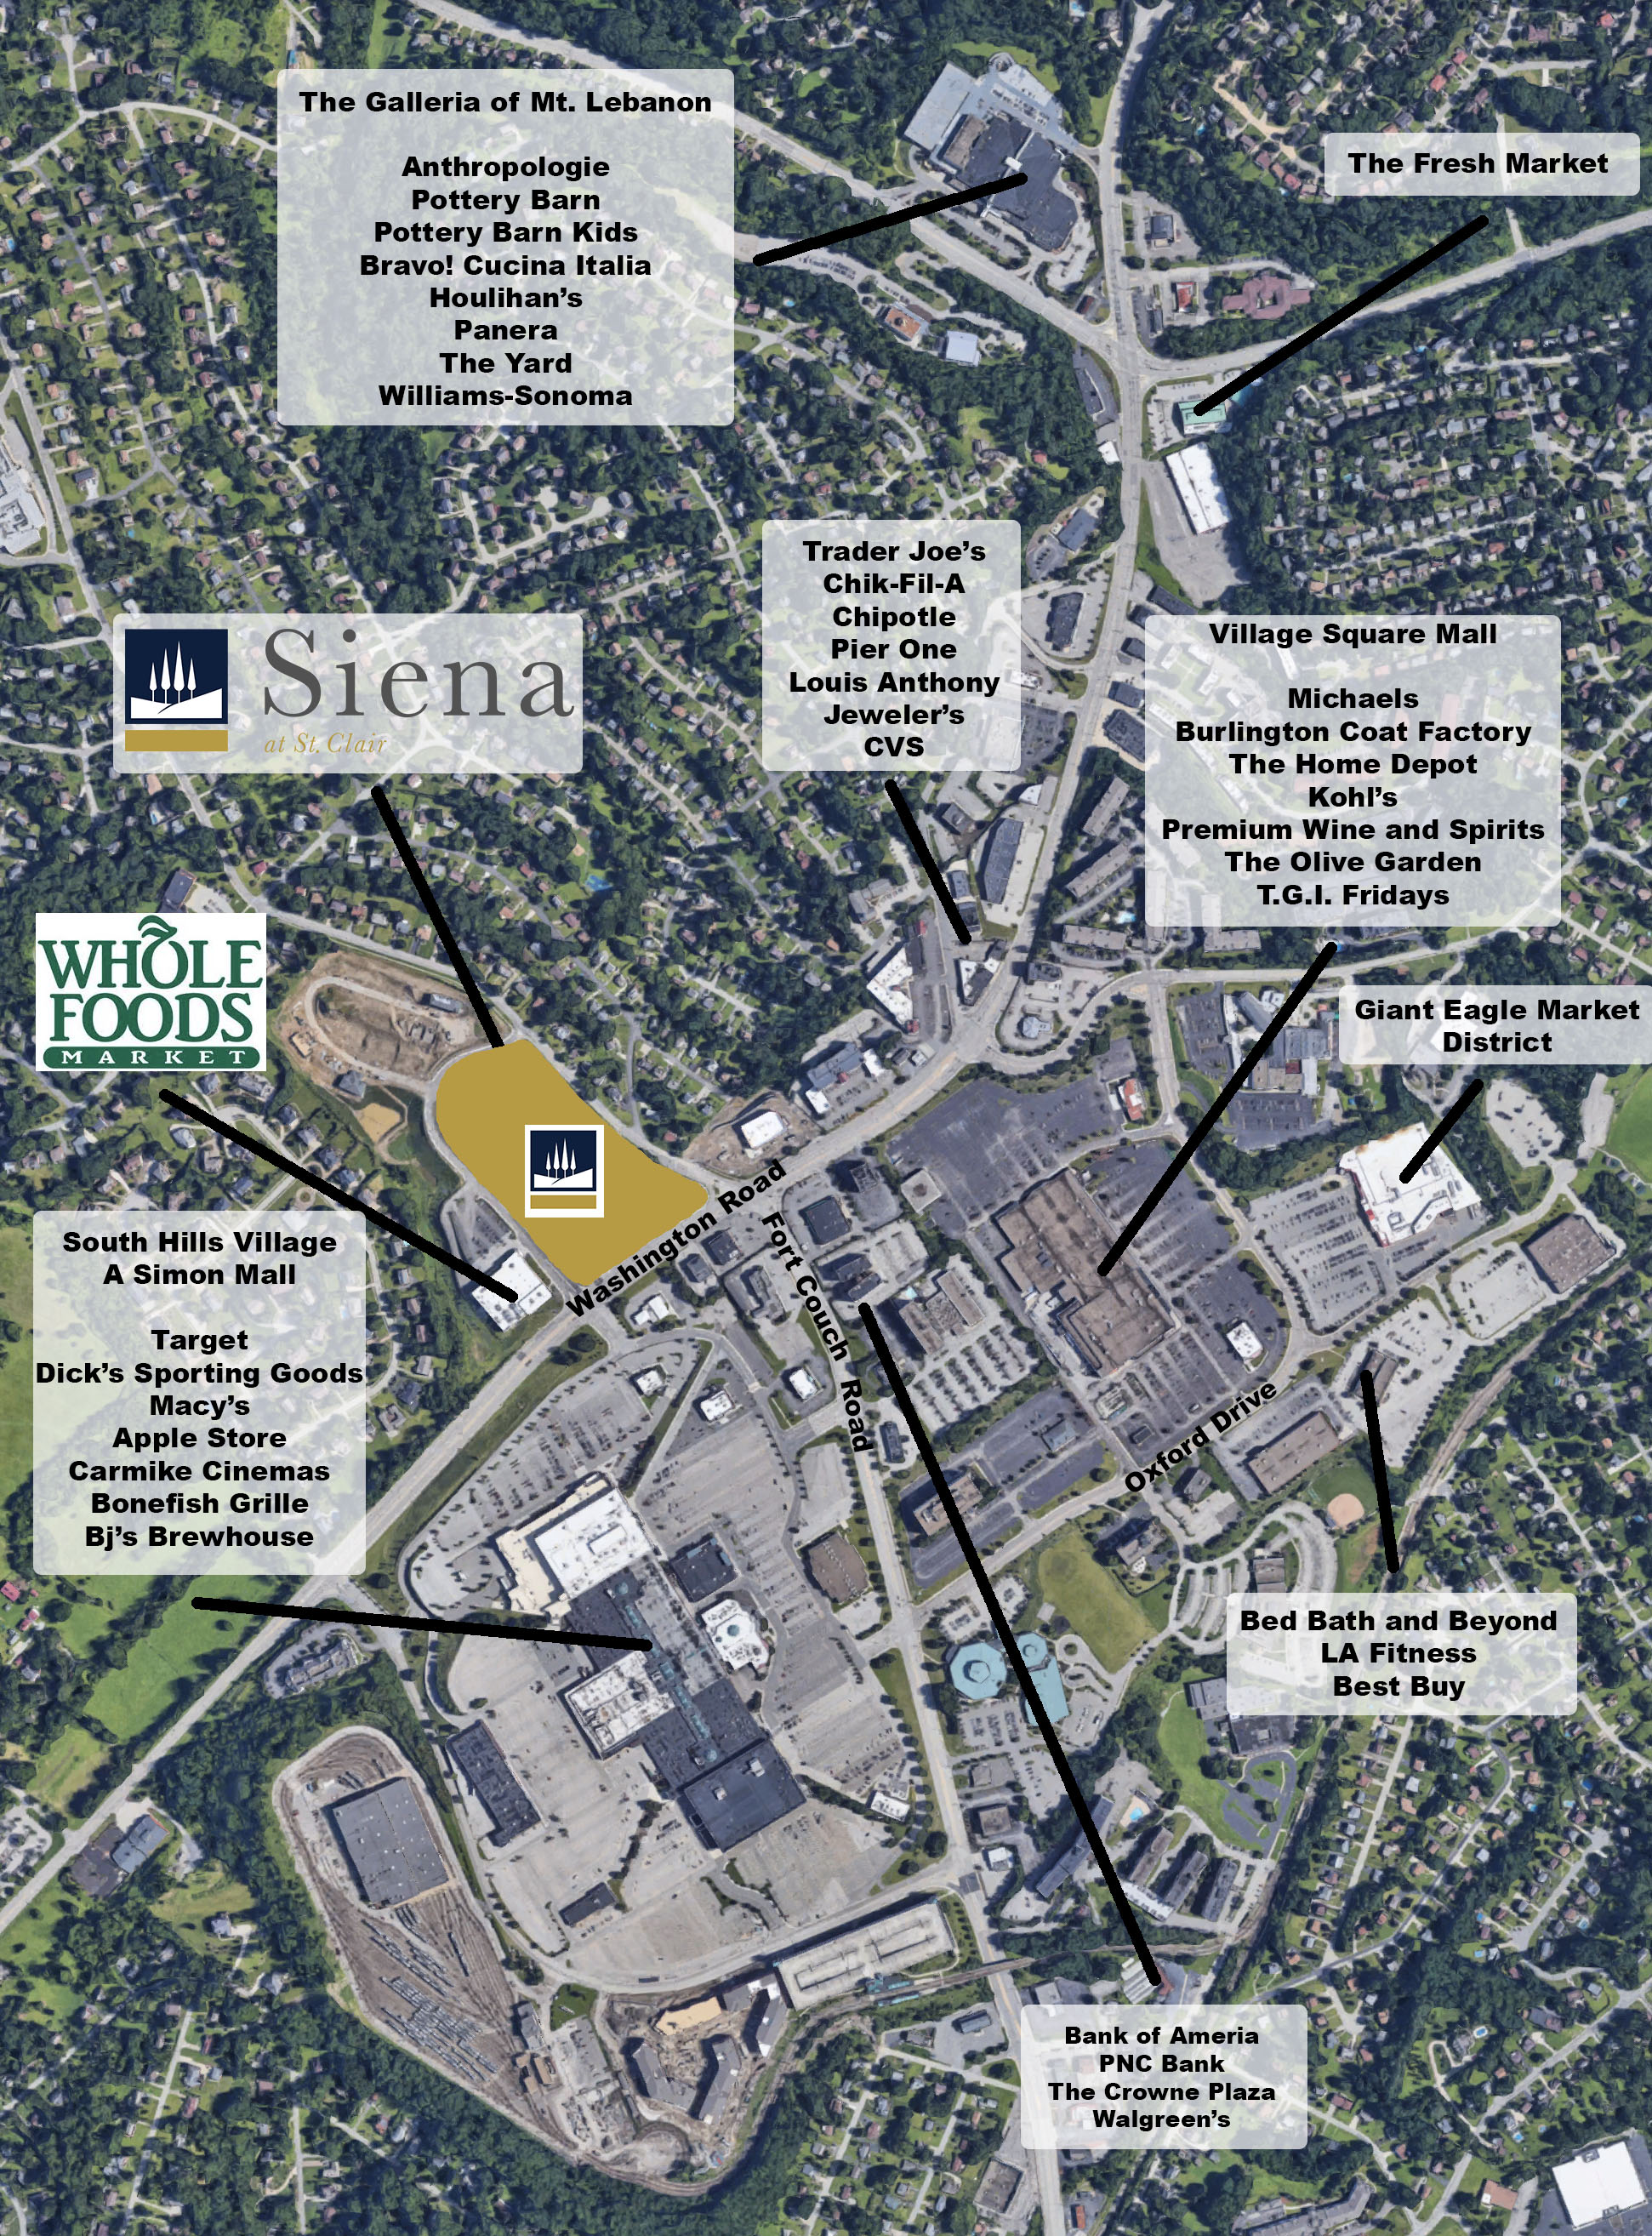 - Now Leasing Siena at St. ClairUpper St. Clair mixed use development with over 120,000 square feet of space in Pittsburgh South HillsAnchored by new Whole Foods MarketTraffic counts of over 40,000 cars per dayMedian household income1 mile: $101,3065 mile: $81,302Contact:Geoff KestlerKGA Partners, LLC412-571-2300 x13gkestler@kgallc.com